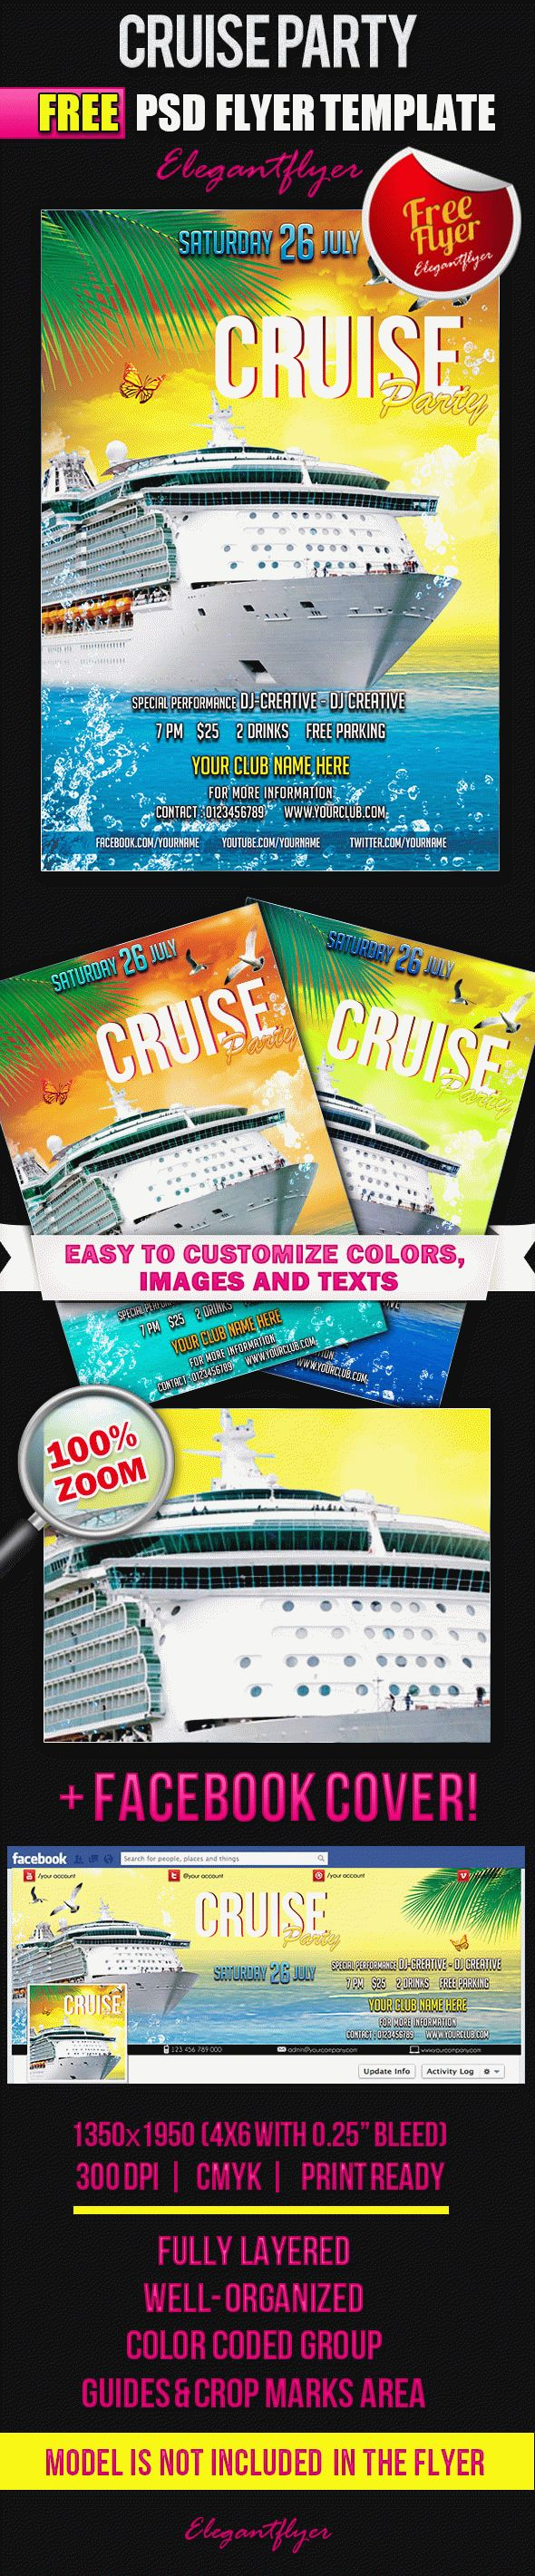 Cruise Party – Free Flyer PSD Template + Facebook Cover